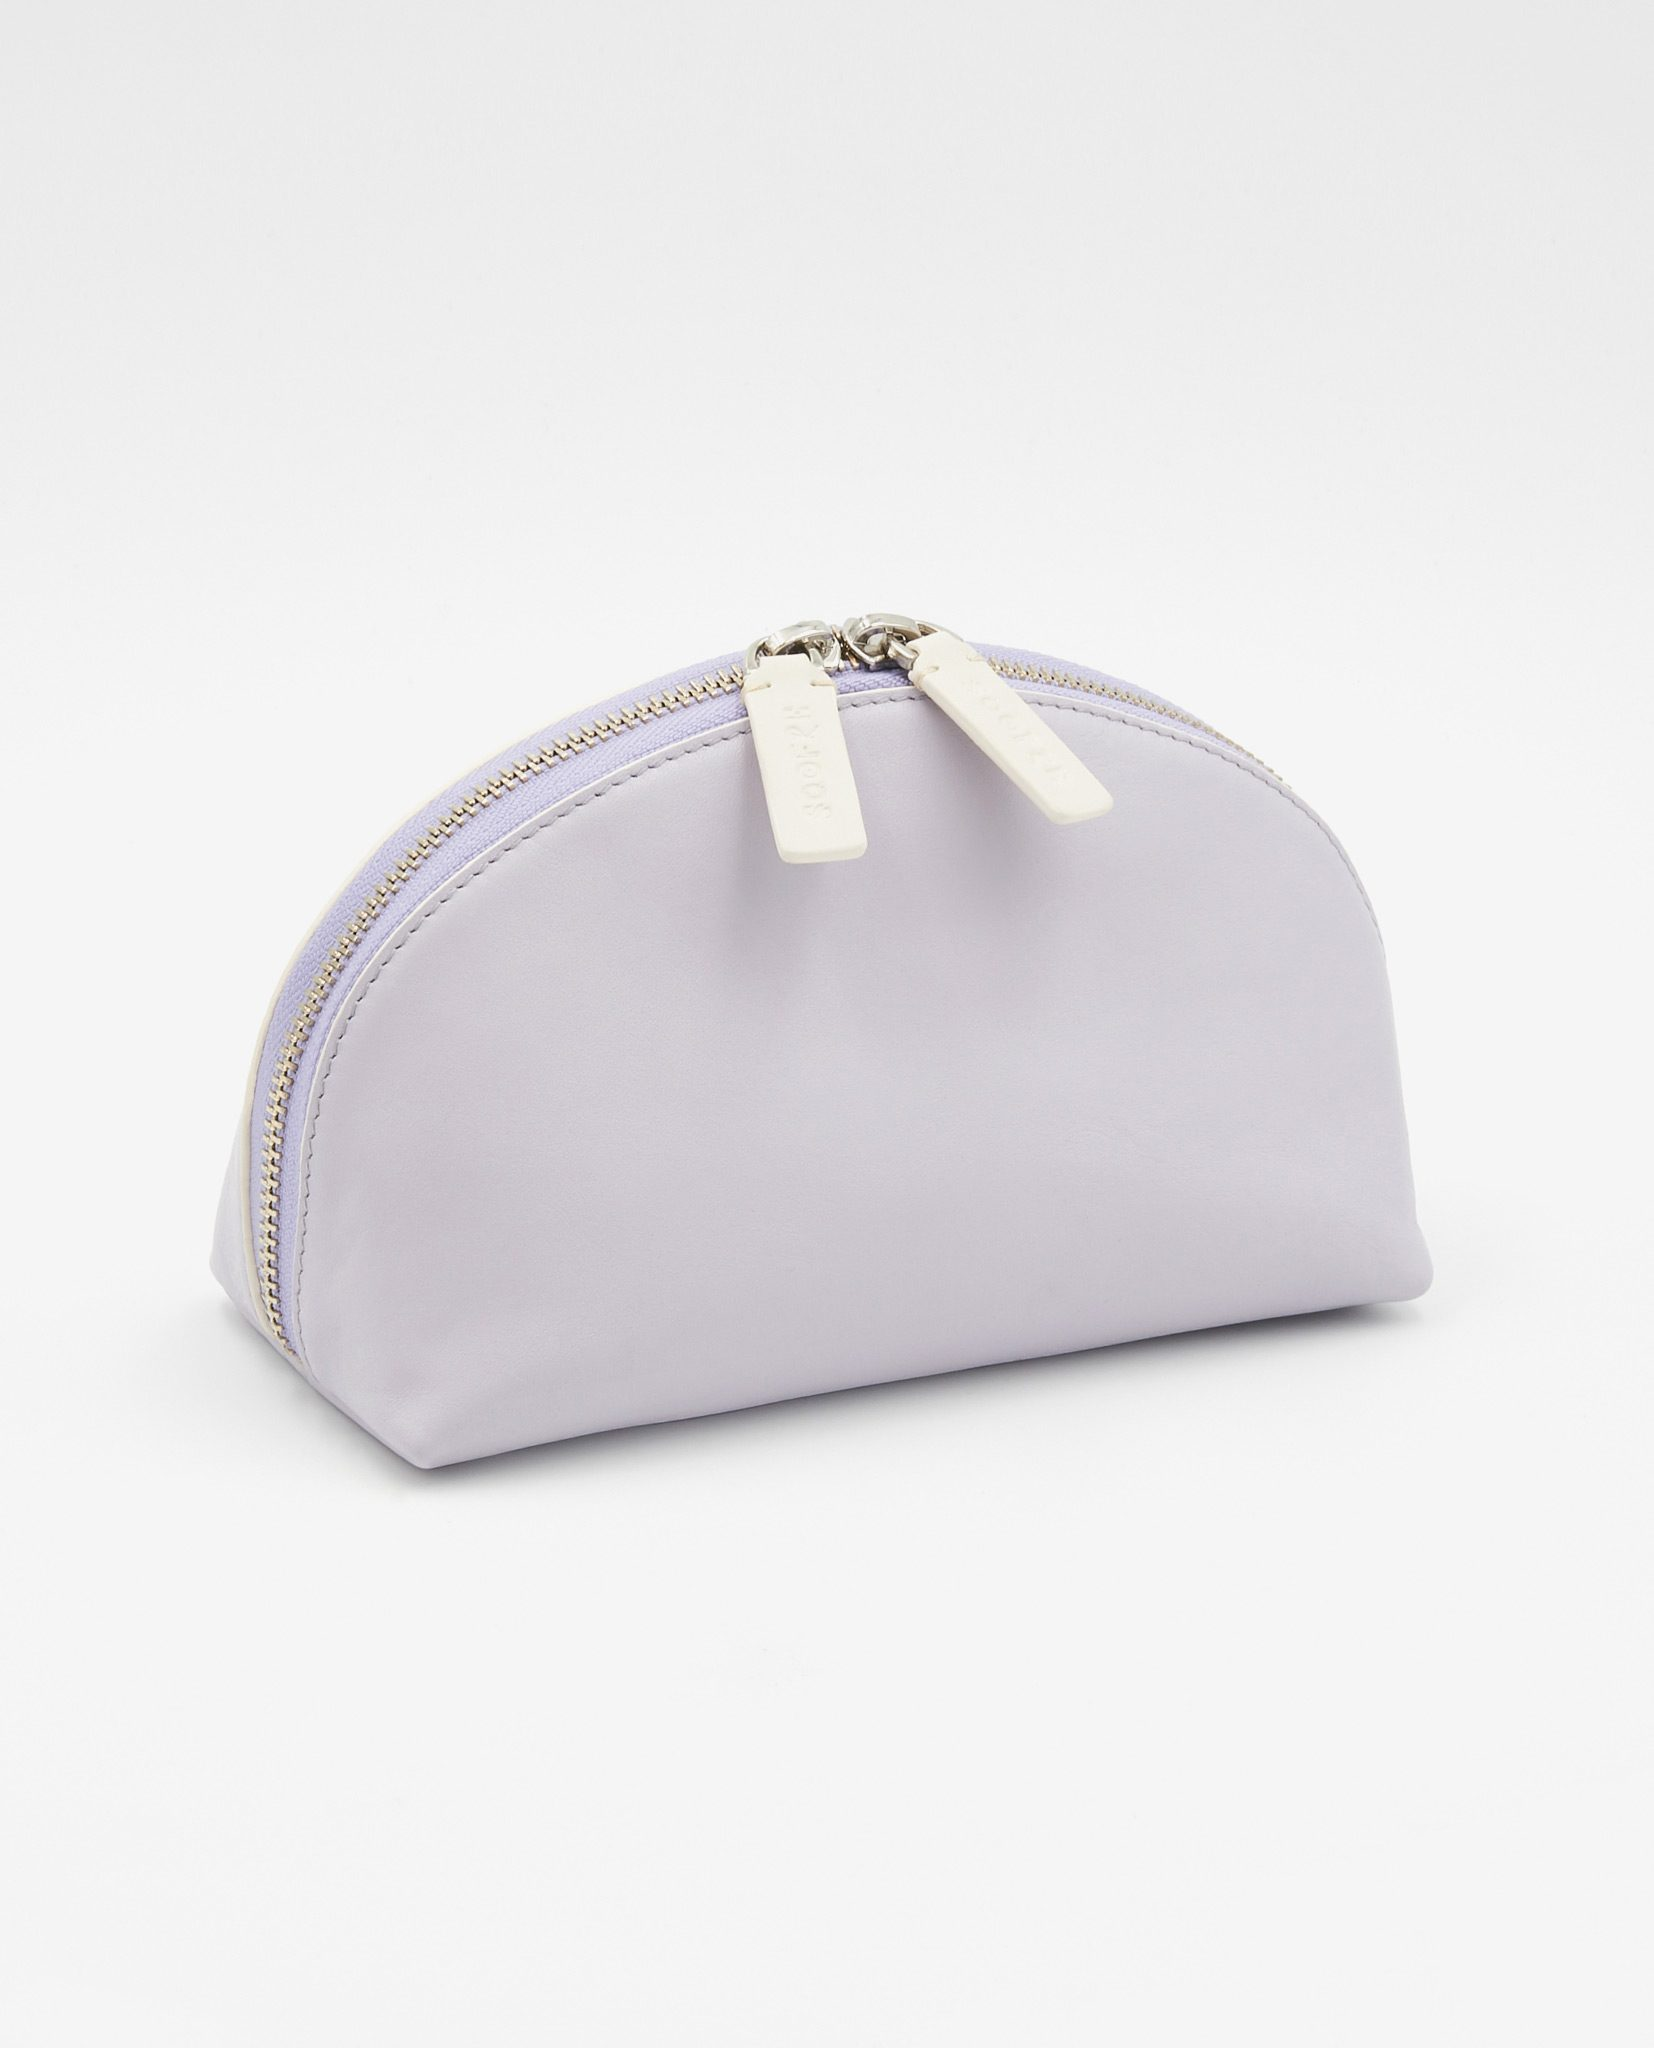 Soofre Smooth Leather Cosmetic Bag Lilac Beige